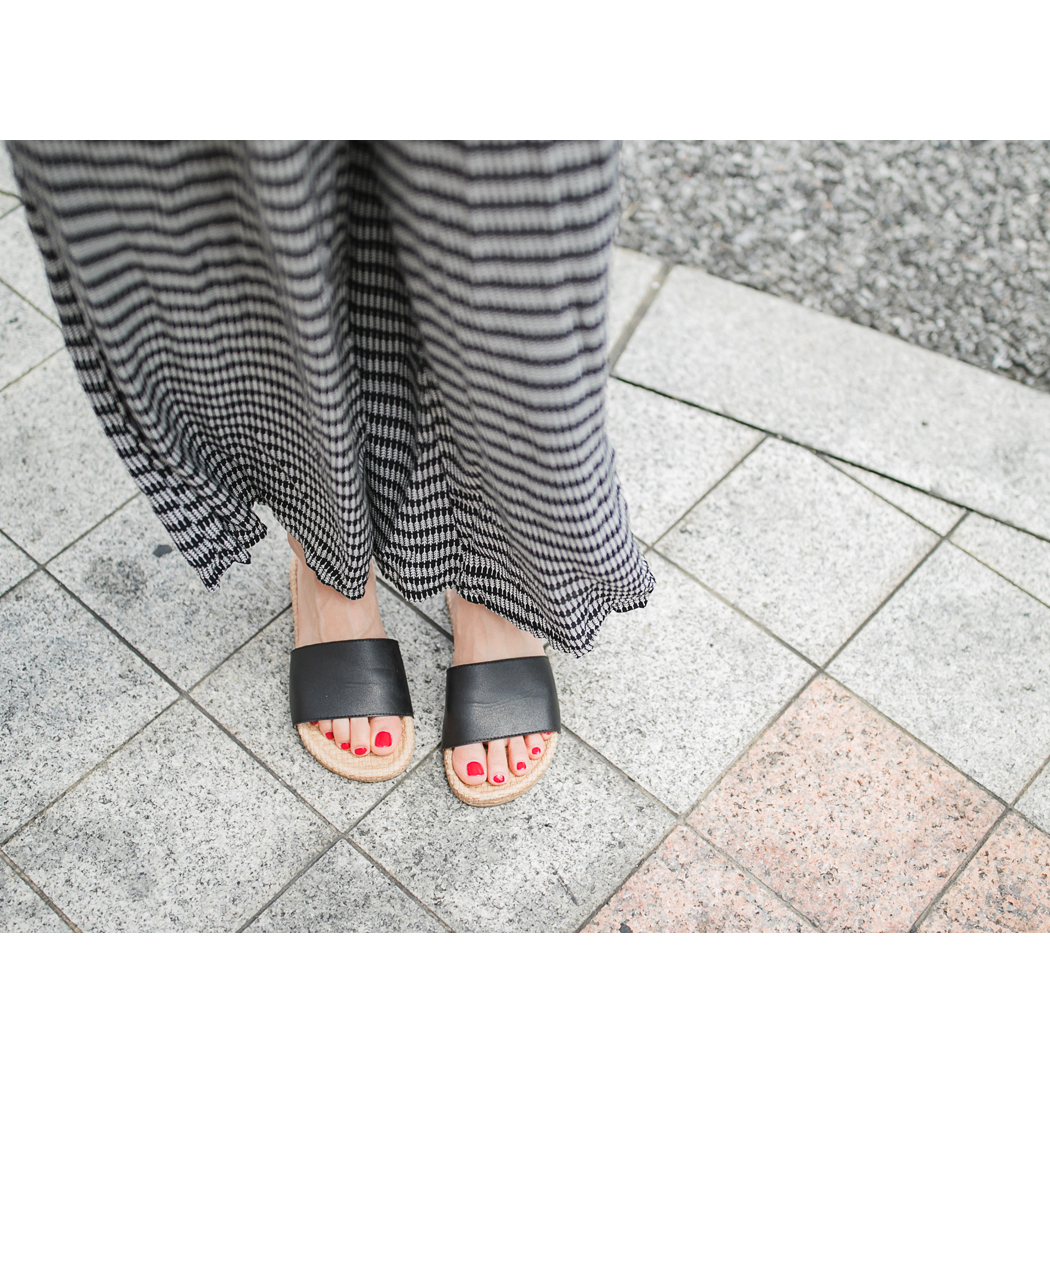 Coco Sandal Slippers